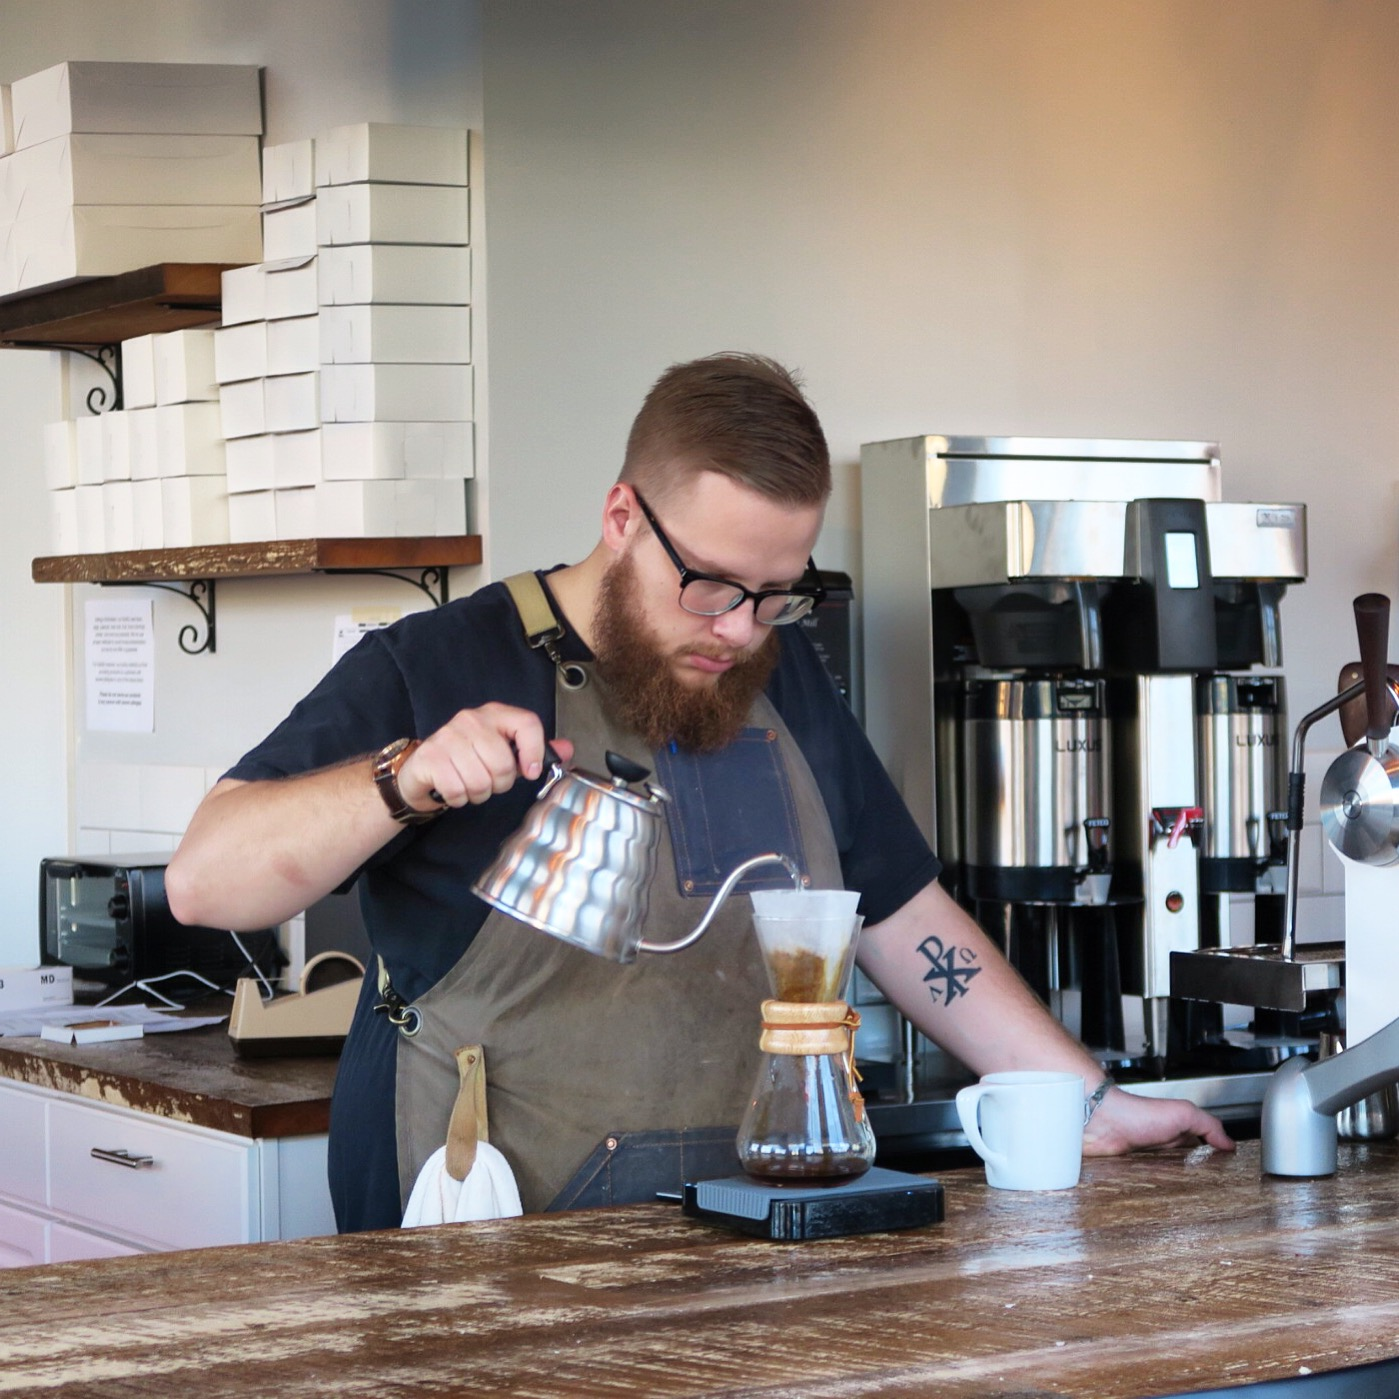 Ryan Baker, Manager   ☕️  @uppercrustcakery  /  @glenedithcoffee greets his customers with love and makes the best dang Pour Over coffee!